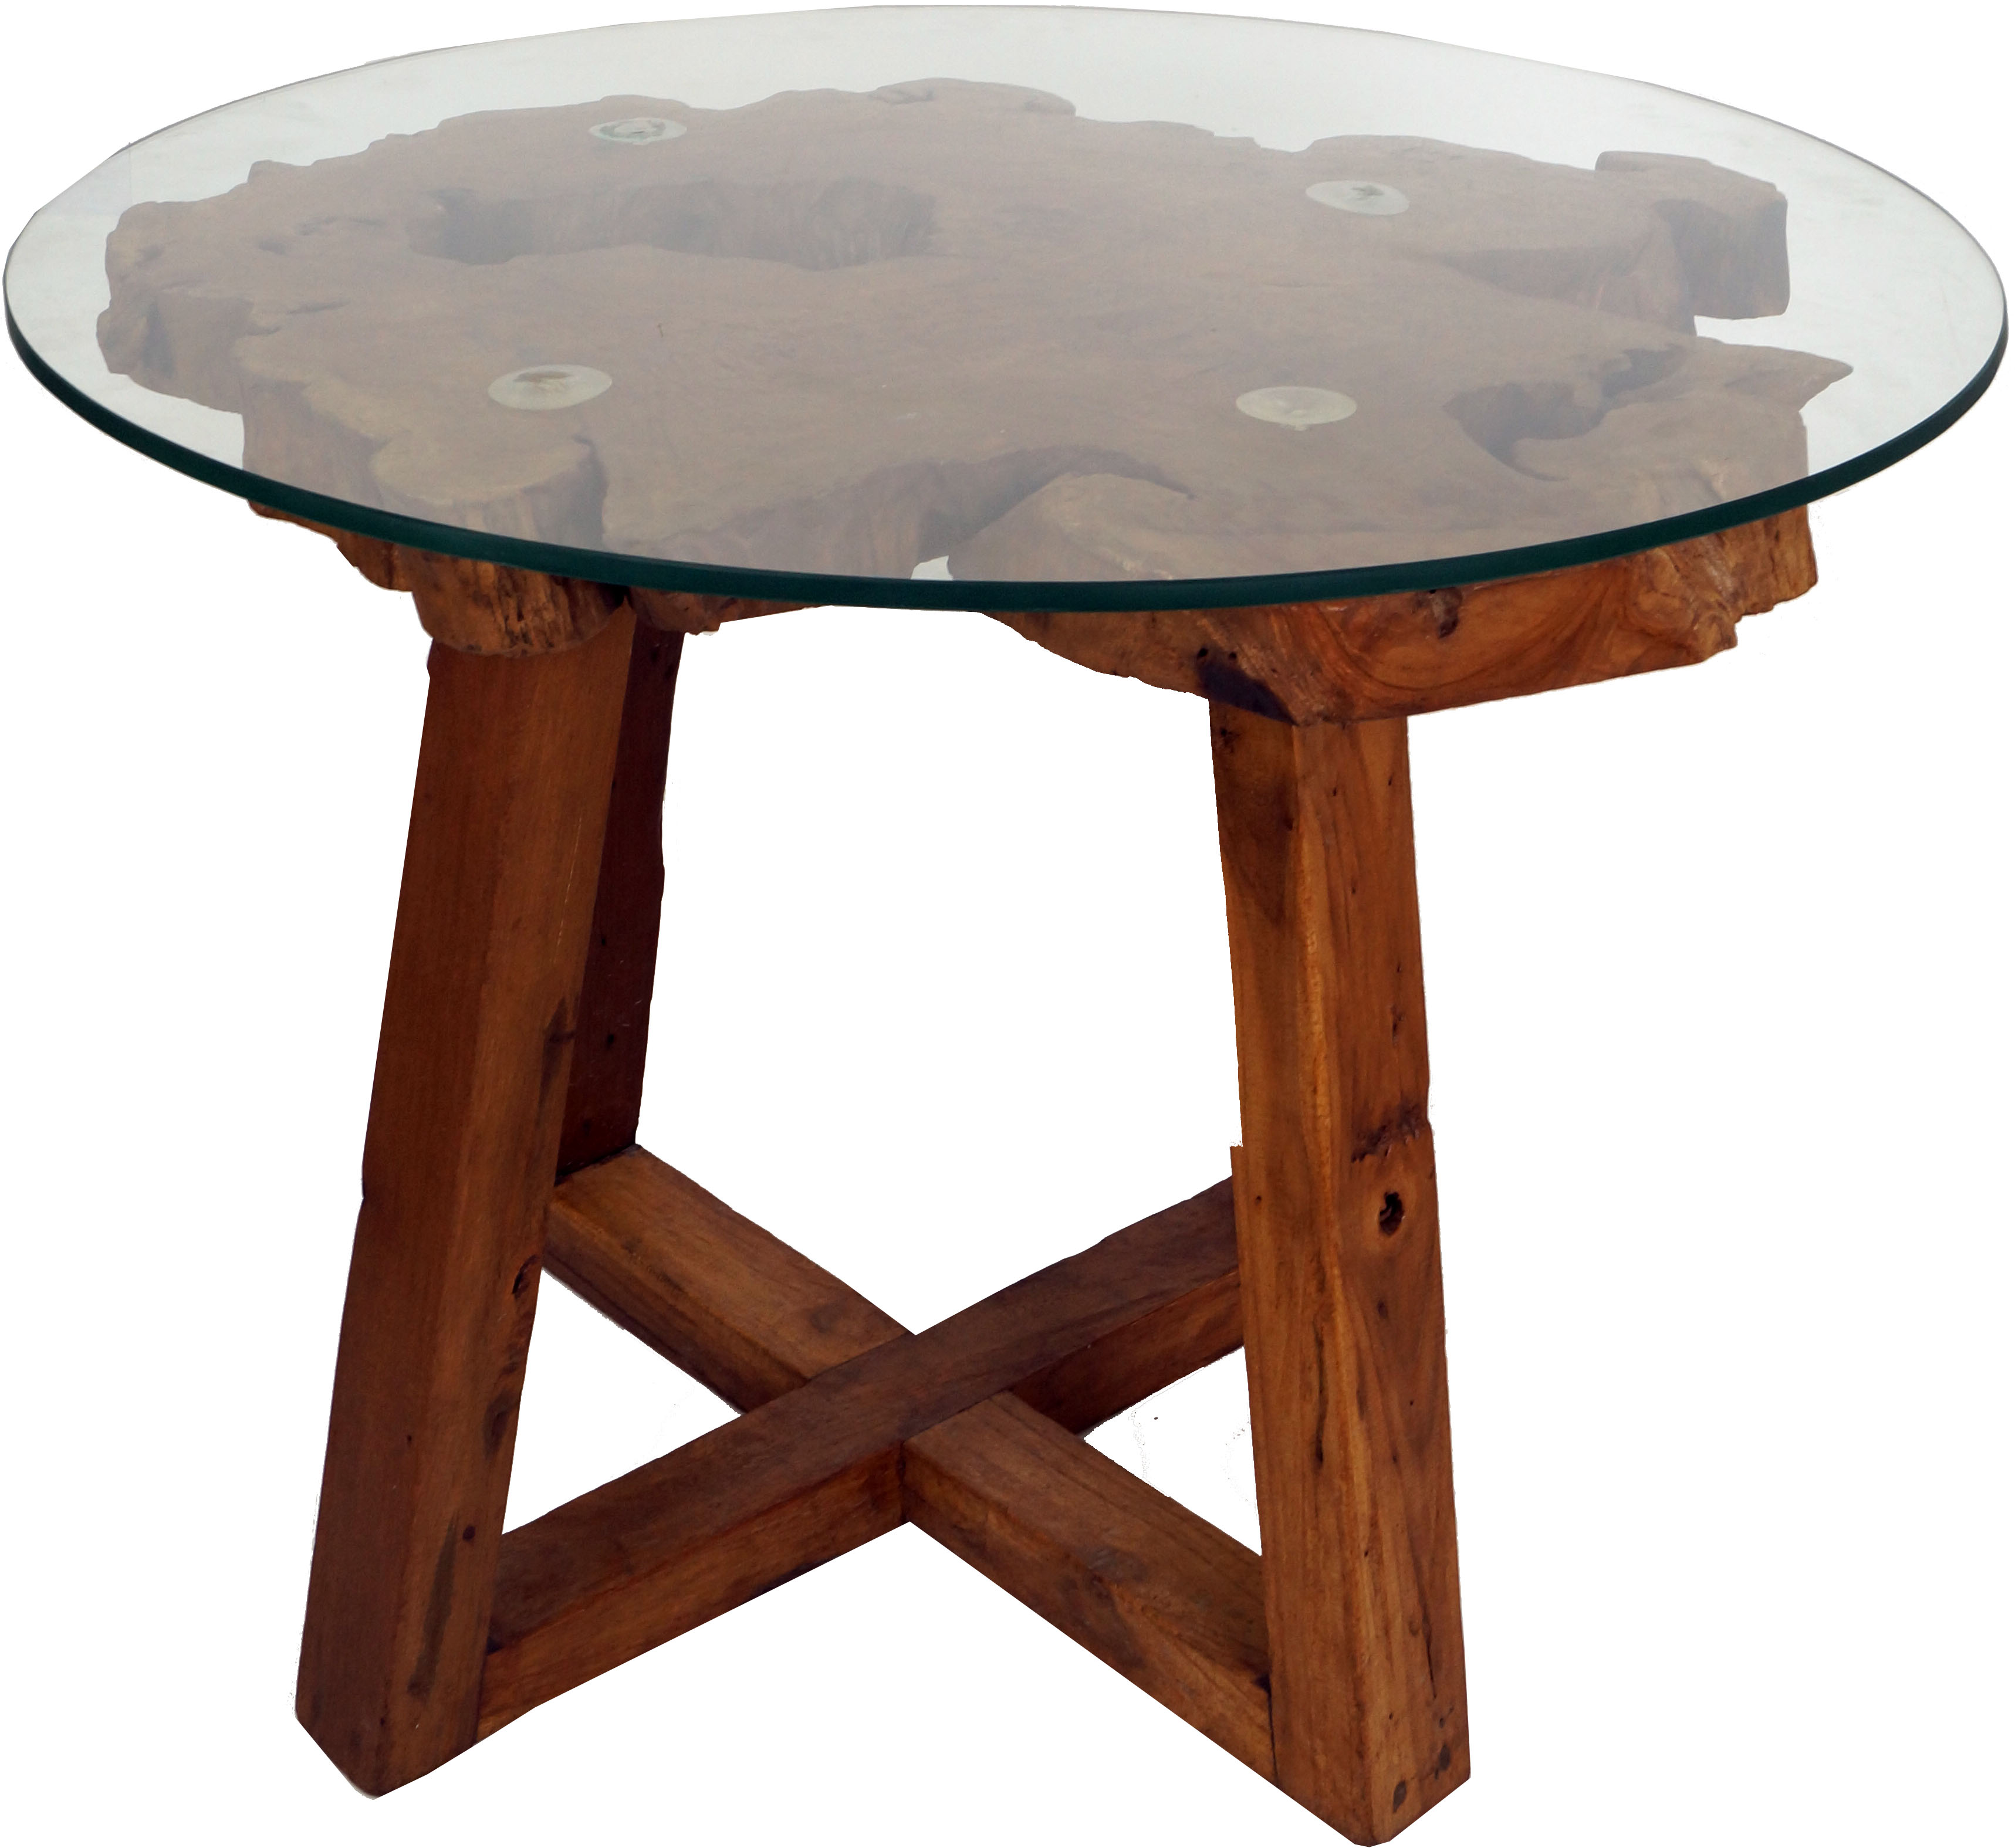 - Table, Dining Table, Coffee Table, Side Table, Coffee Table With